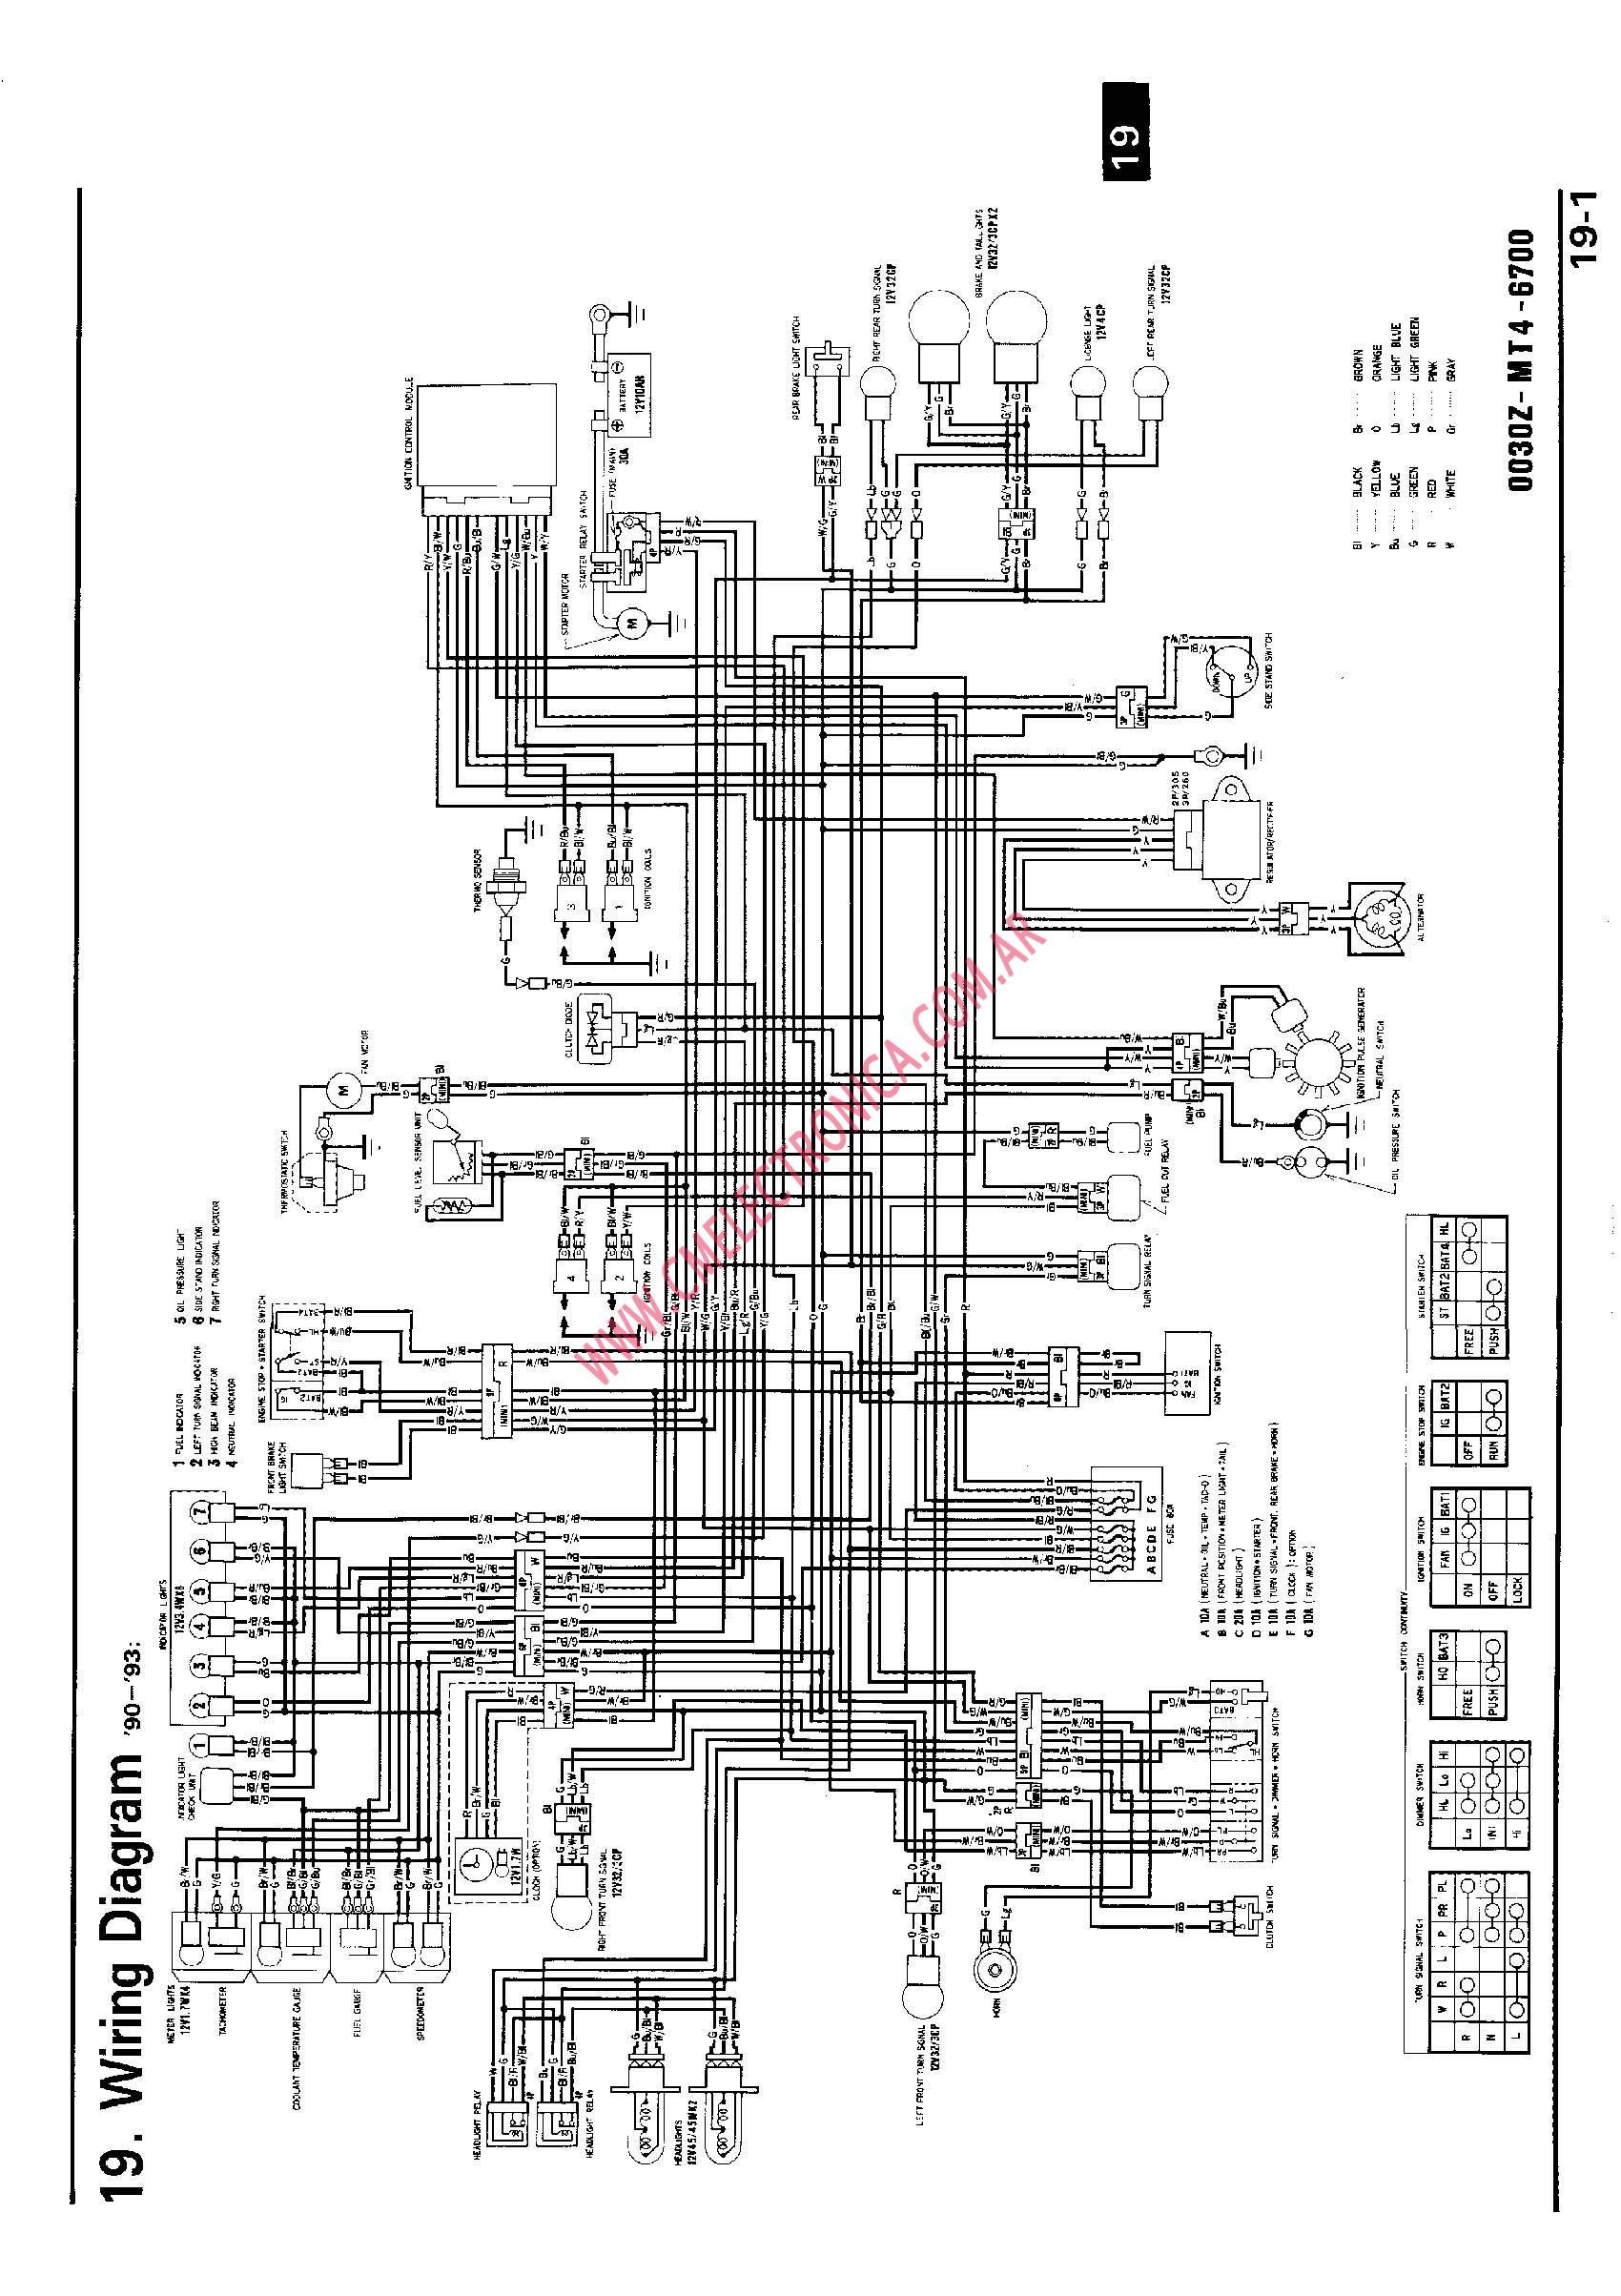 honda vfr 750 diagram 95 vfr 750 honda engine diagram